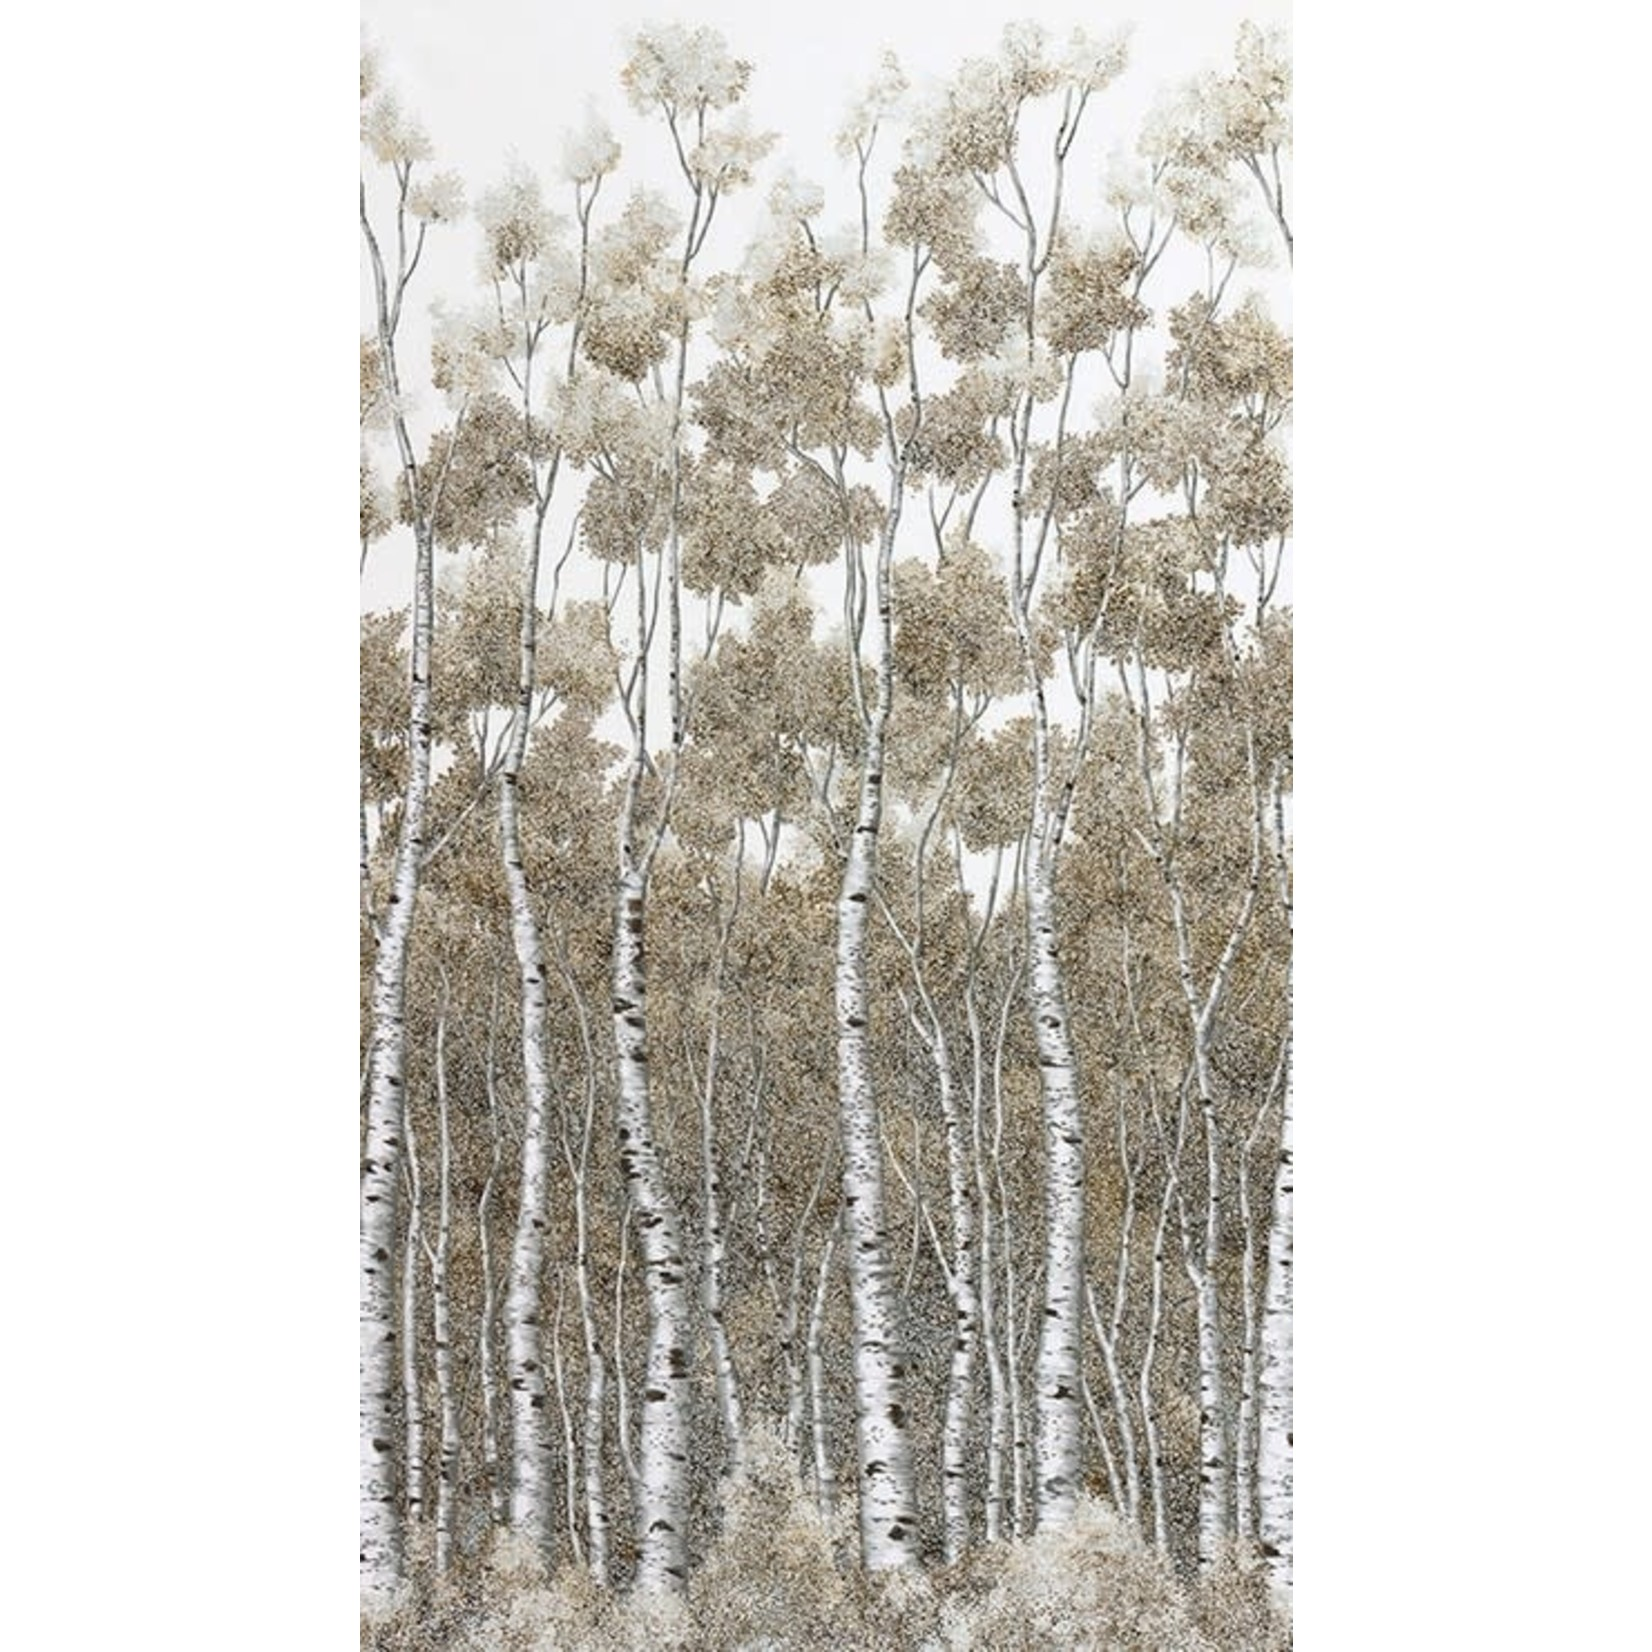 ROBERT KAUFMAN WILDWOOD GRACE, SILVER BIRCHES (19322-186) $0.20/CM OR $20/M